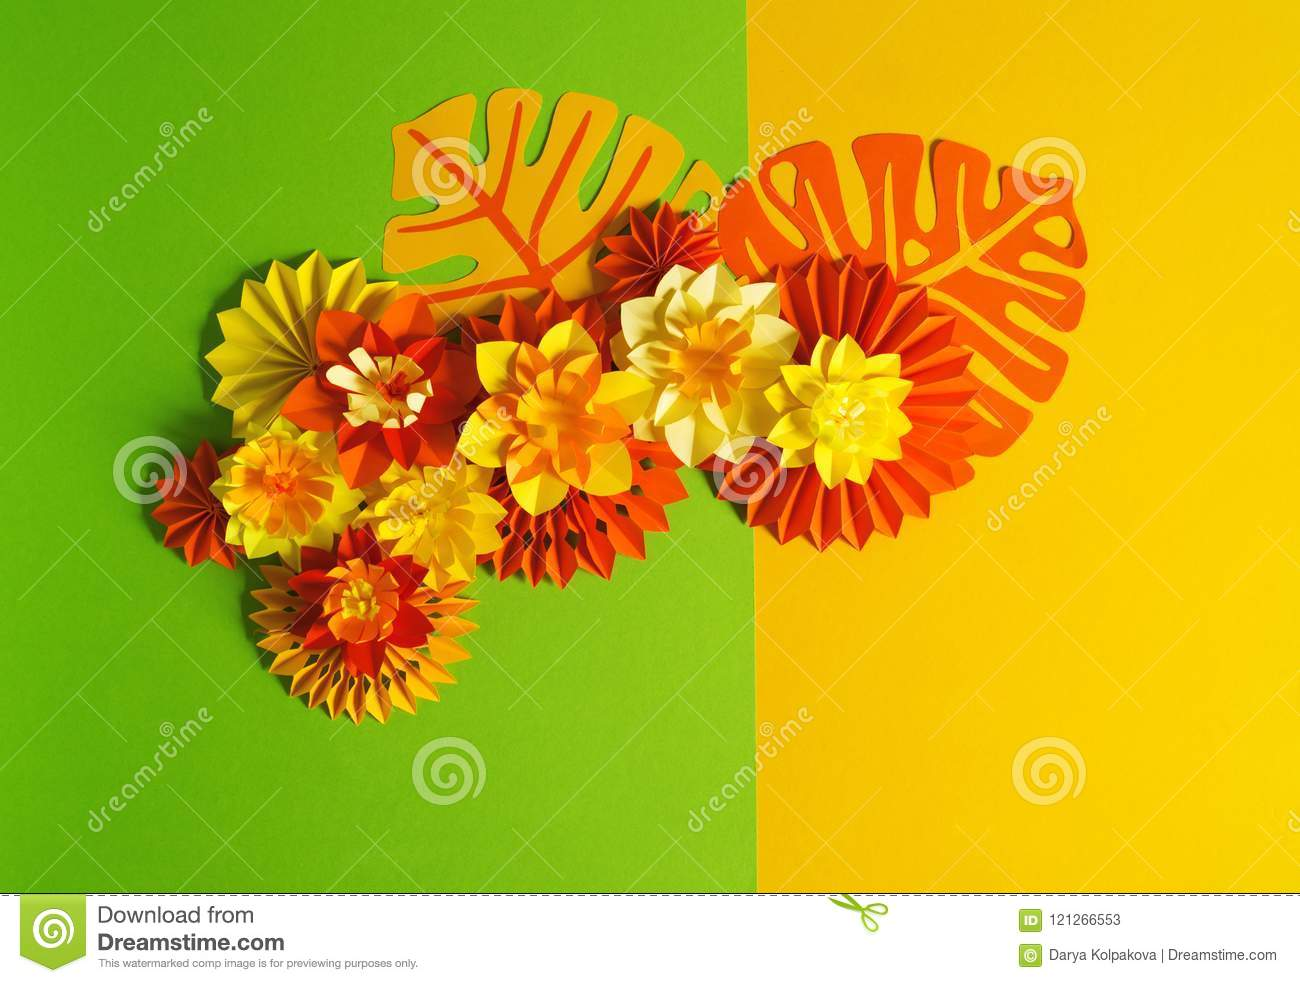 Paper Craft Flower Decoration Concept. Flowers And Leaves Made Of ...